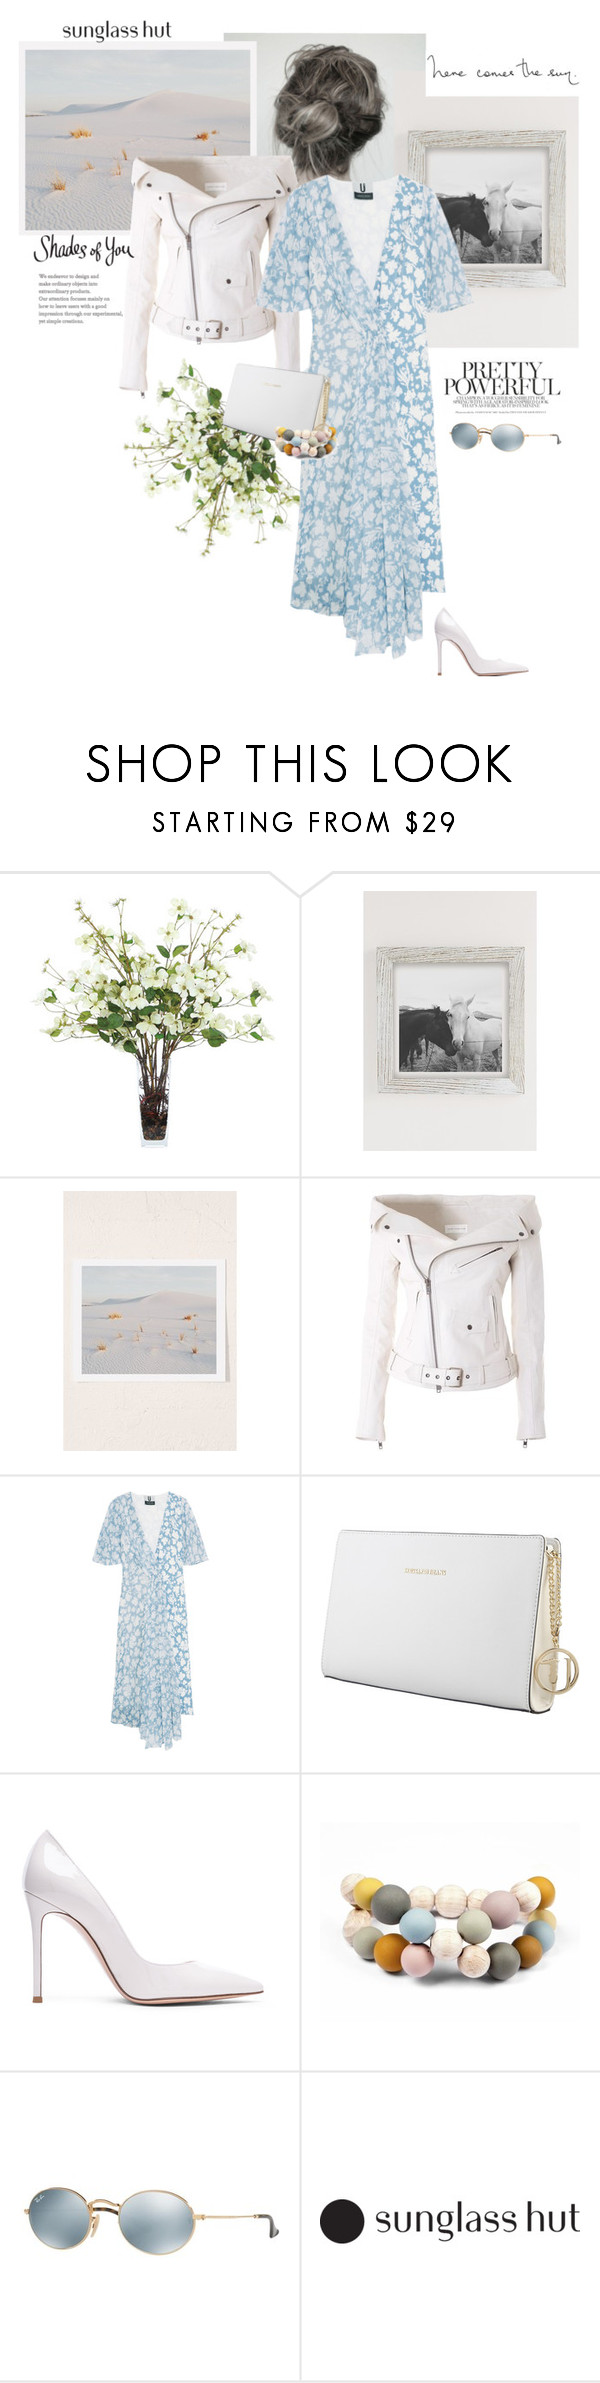 """""""Pretty Powerful"""" by rever-de-paris ❤ liked on Polyvore featuring Lux-Art Silks, Urban Outfitters, Faith Connexion, Topshop Unique, Trussardi, Gianvito Rossi, Hring eftir hring and Ray-Ban"""